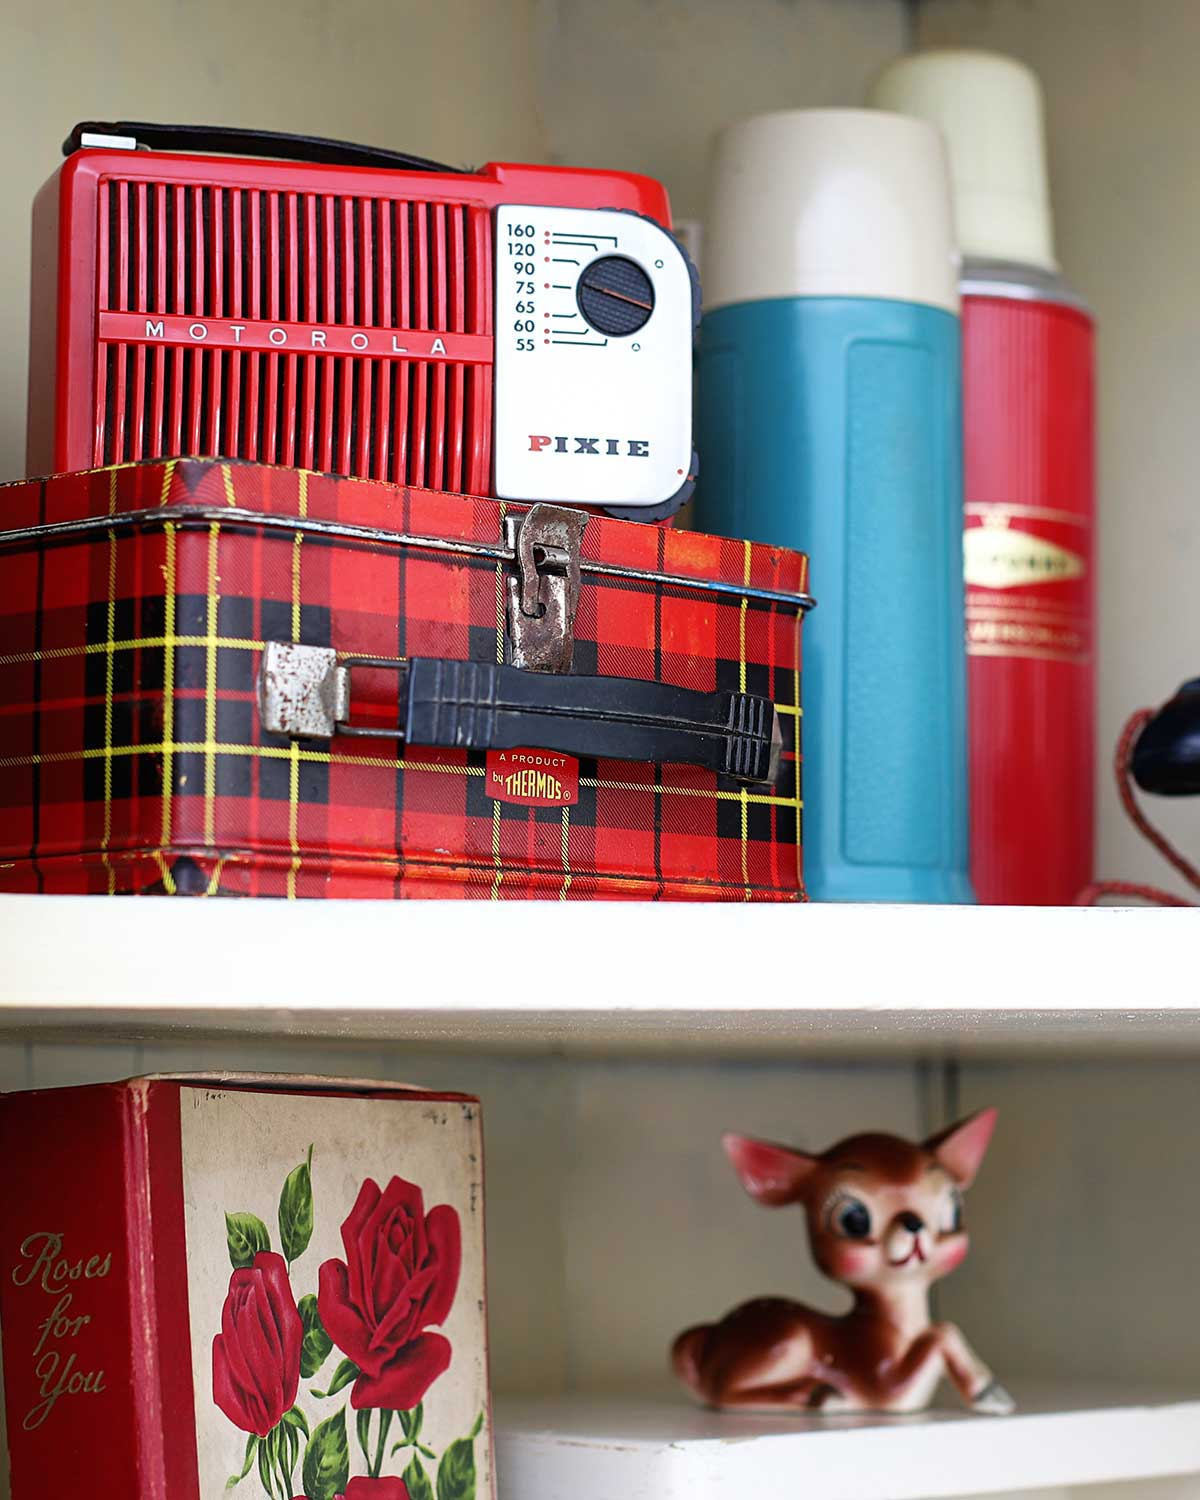 A red Motorola Pixie radio, vintage plaid school Thermos lunchbox and thermoses